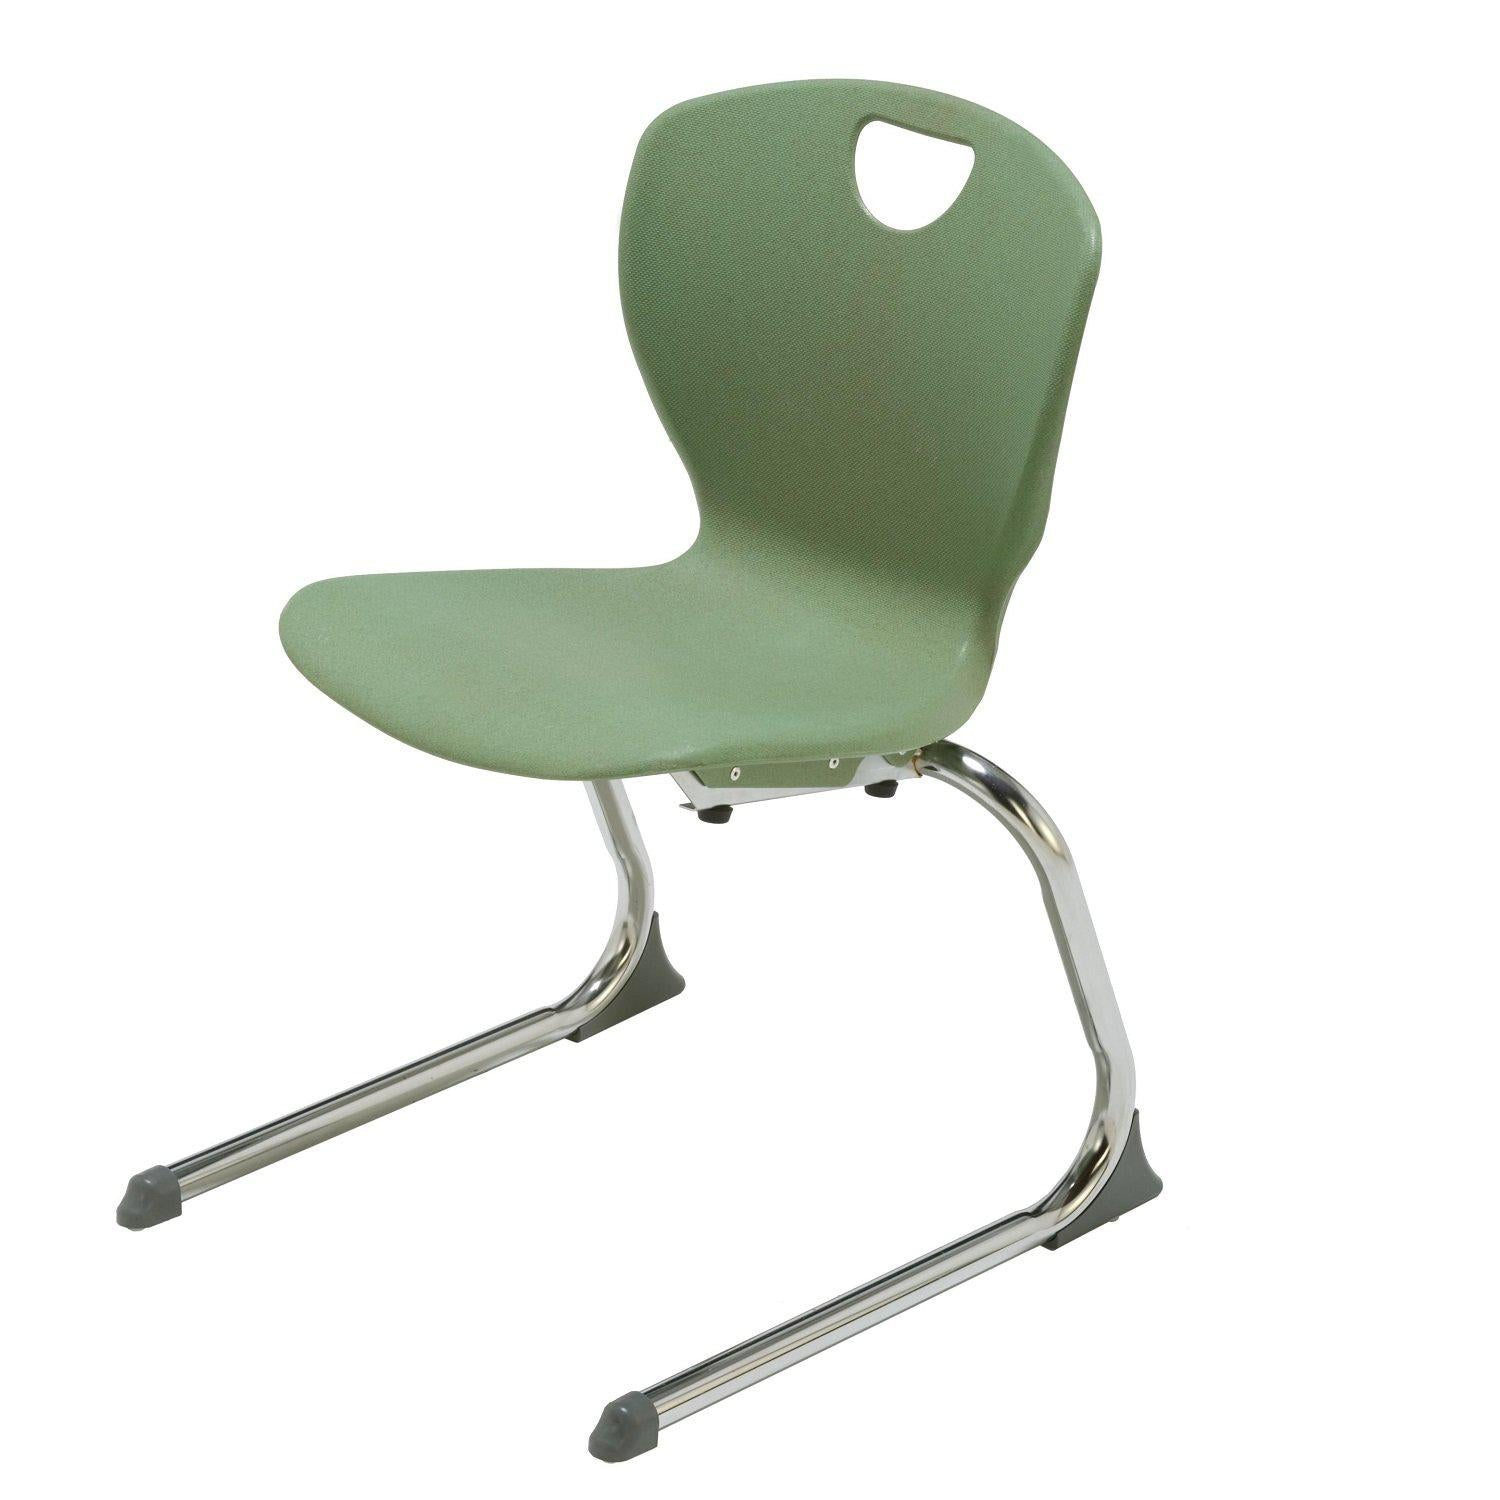 "Ovation Cantilever Stacking Student Chair, 14"" Seat Height"